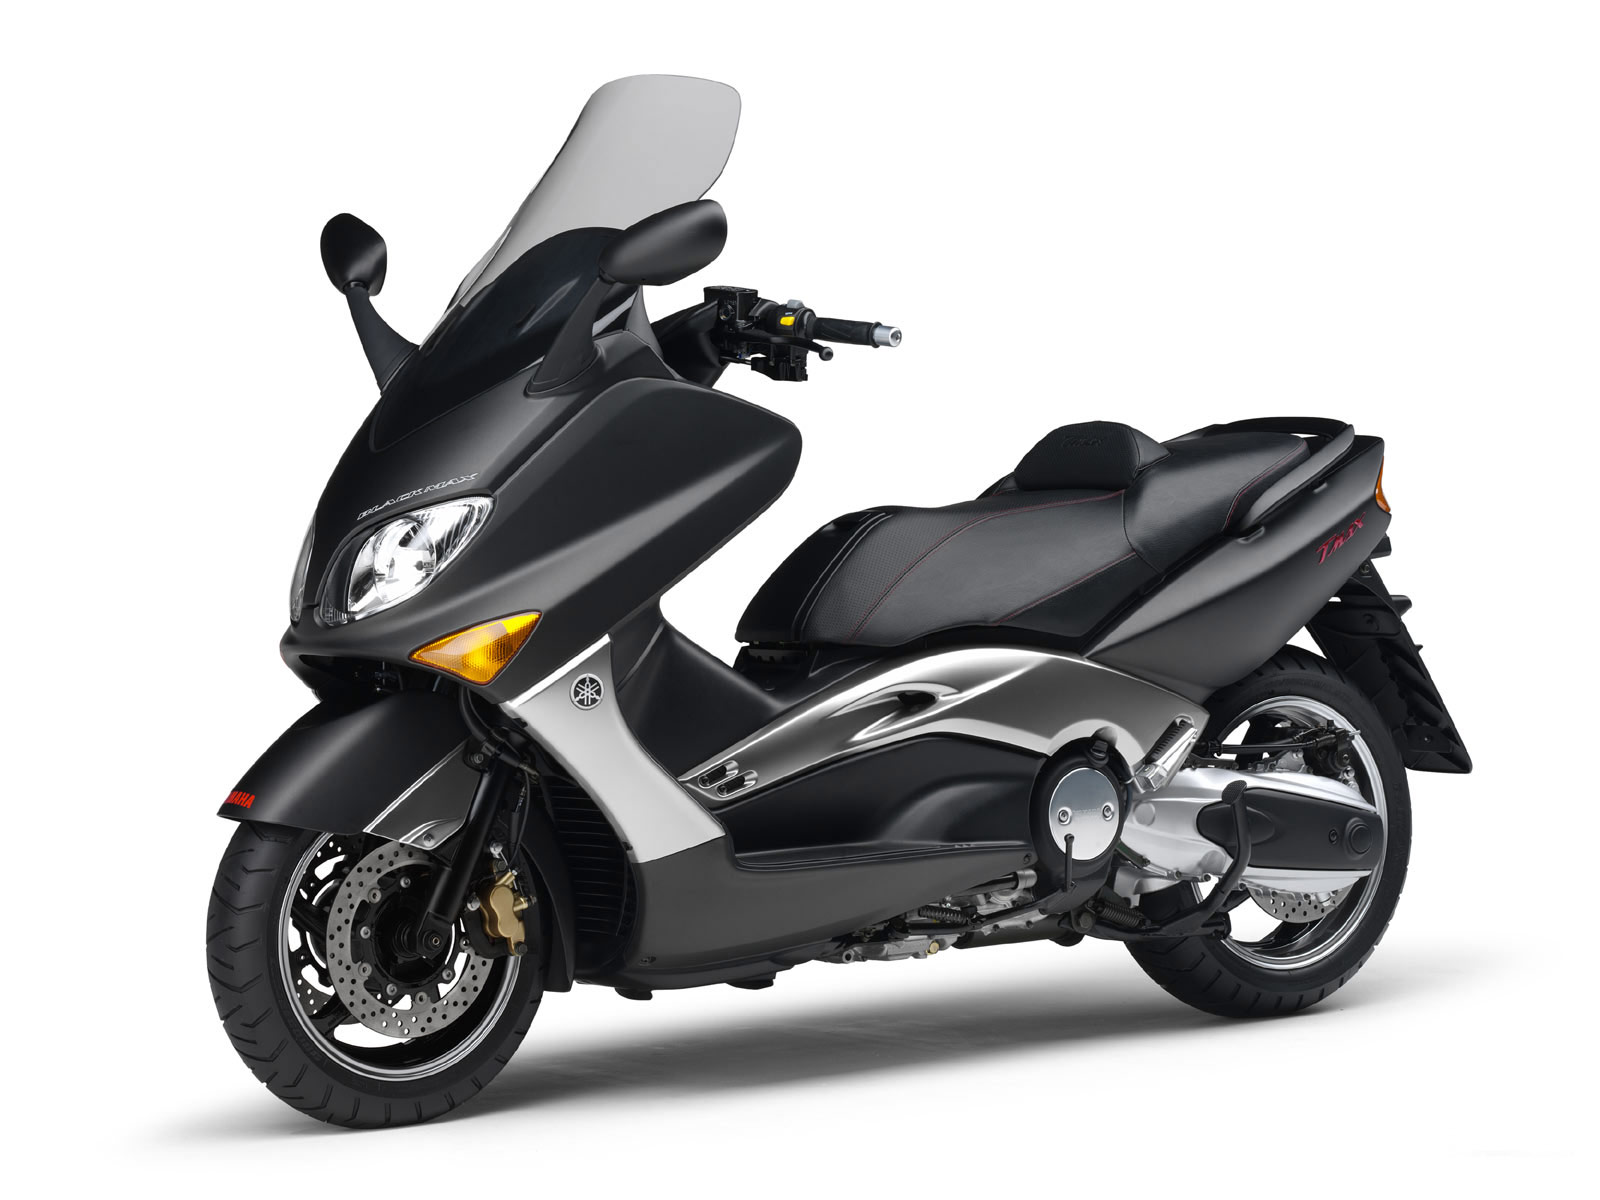 2007 yamaha tmax scooter pictures review specifications. Black Bedroom Furniture Sets. Home Design Ideas